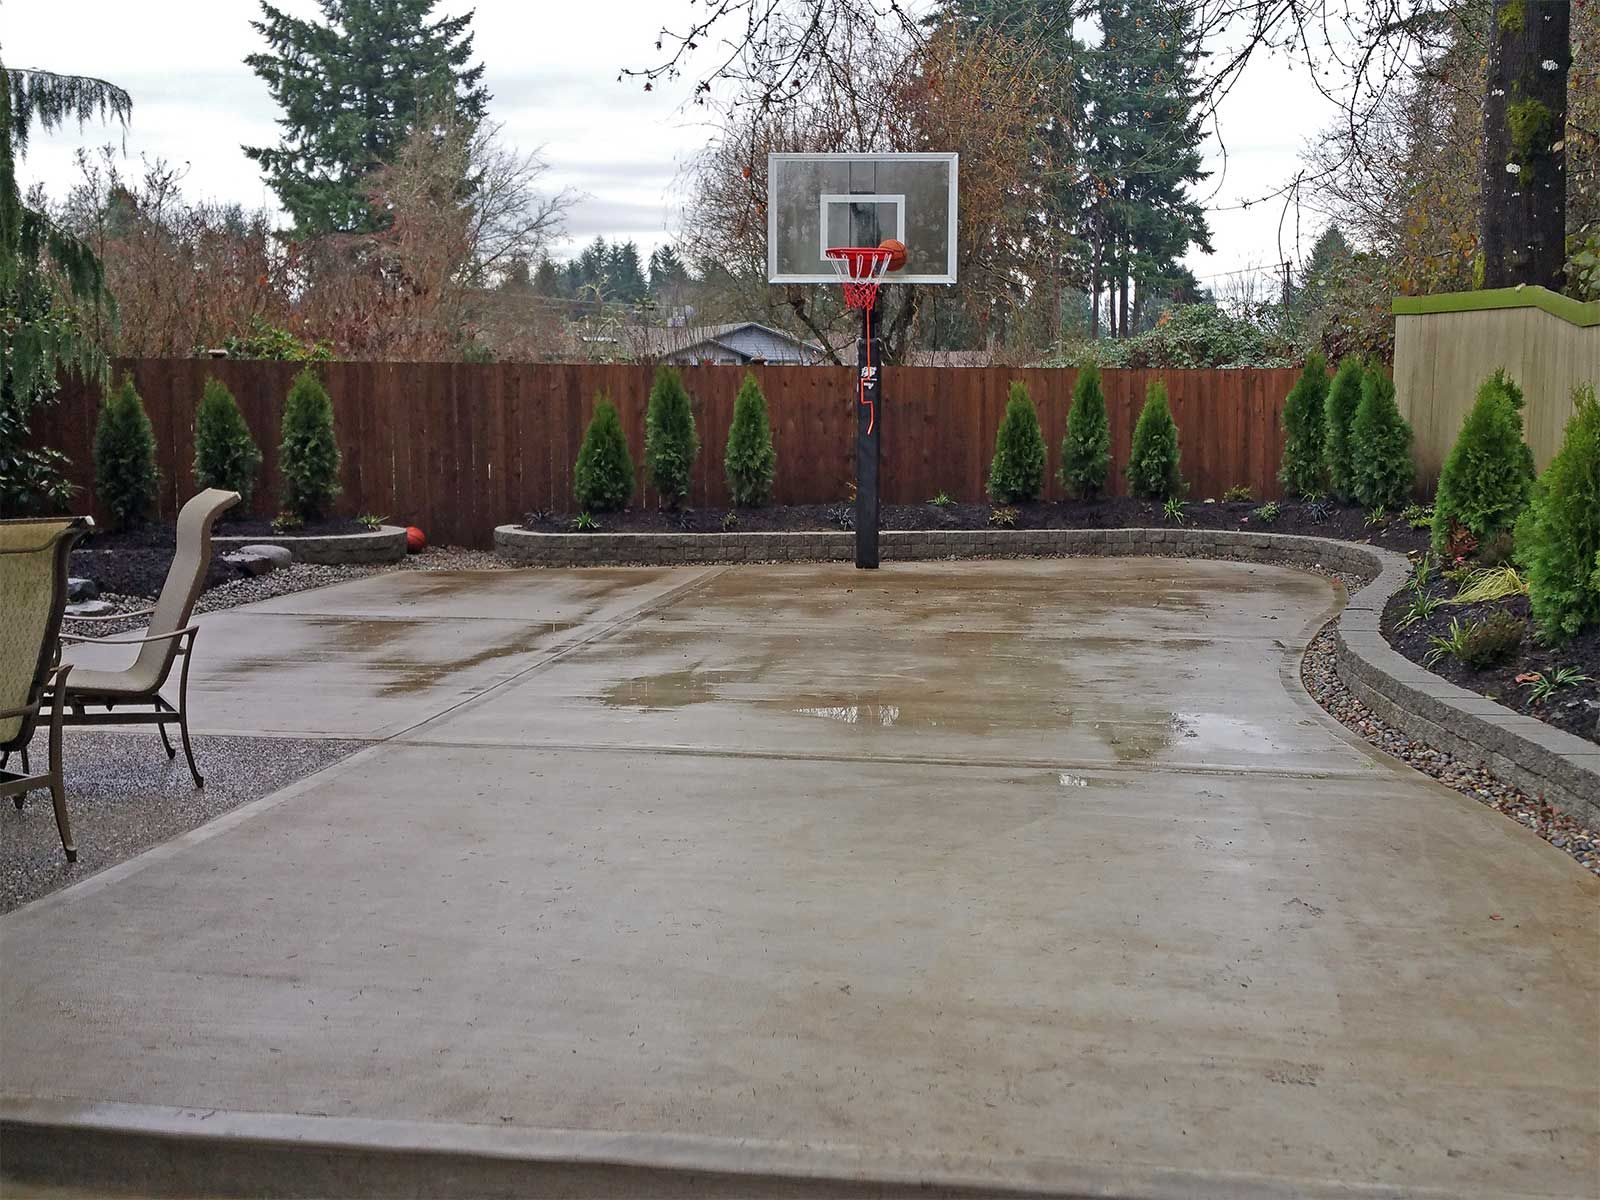 Perfect The Concrete Slab Basketball Court Is Great Exercise For The Whole Family.